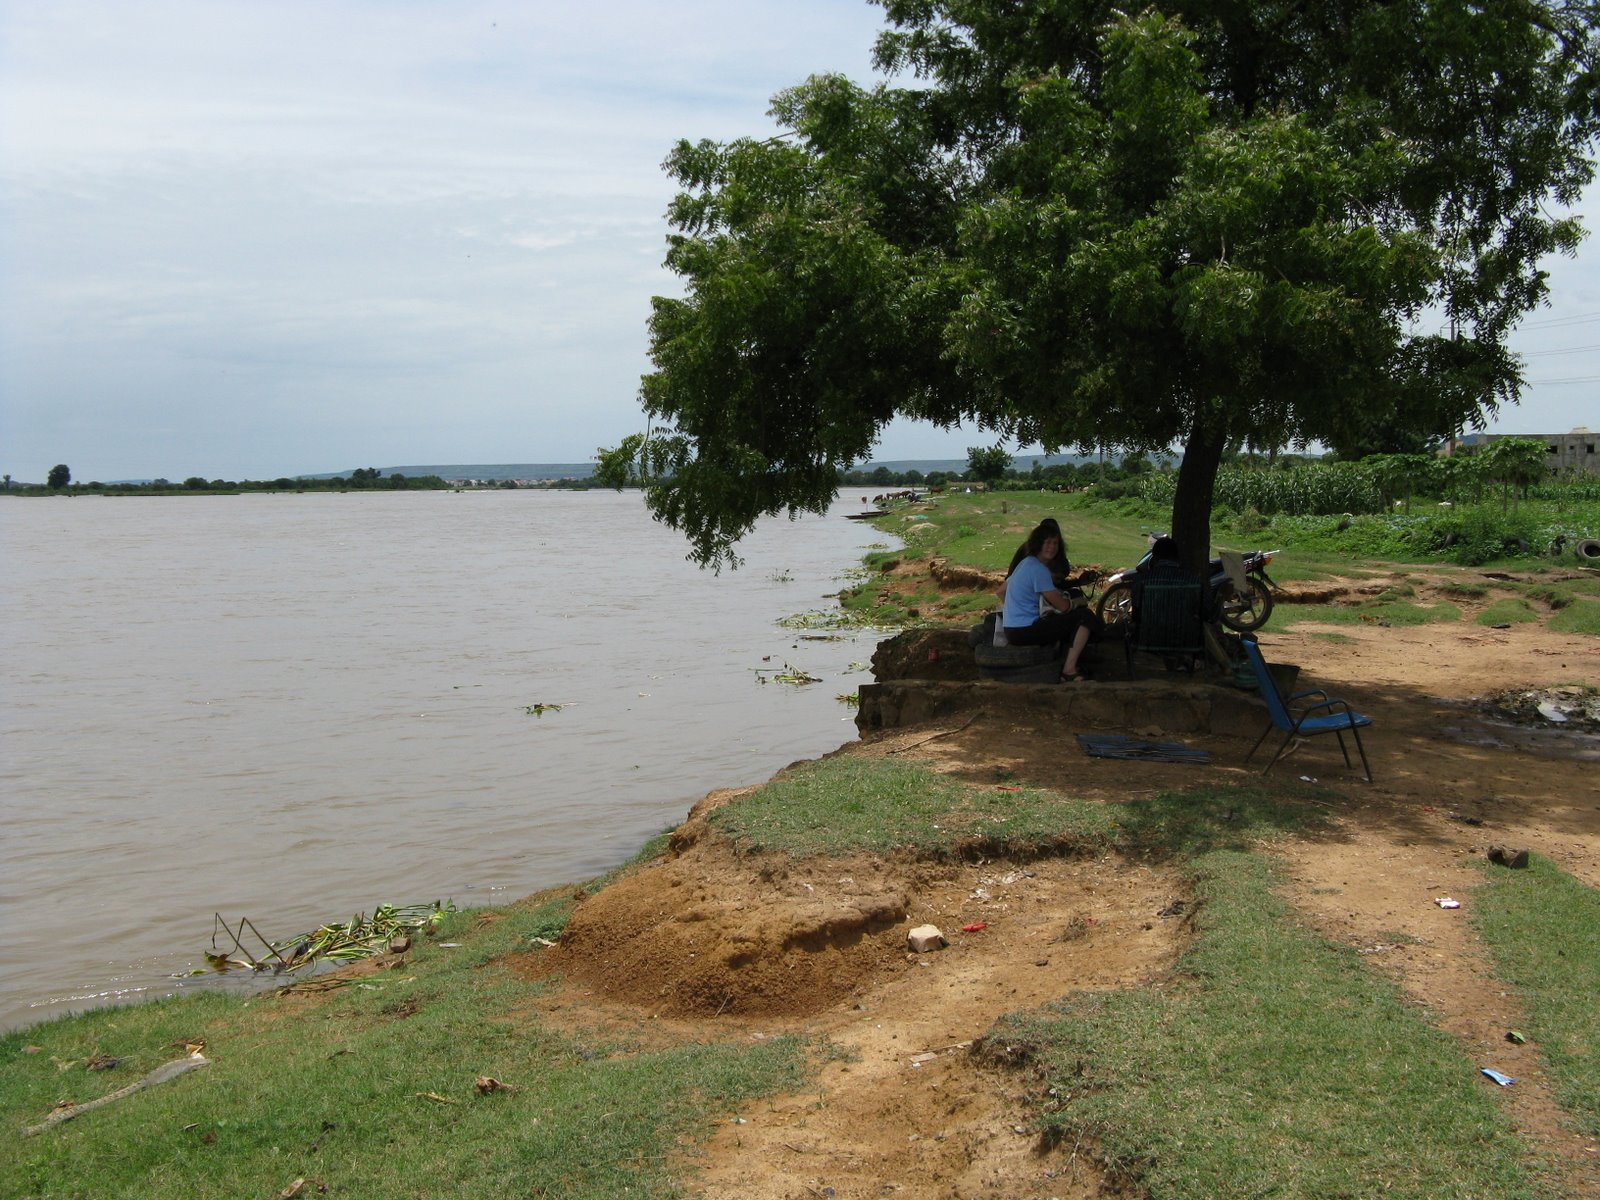 Stacy with a Fulani man making tea by the river